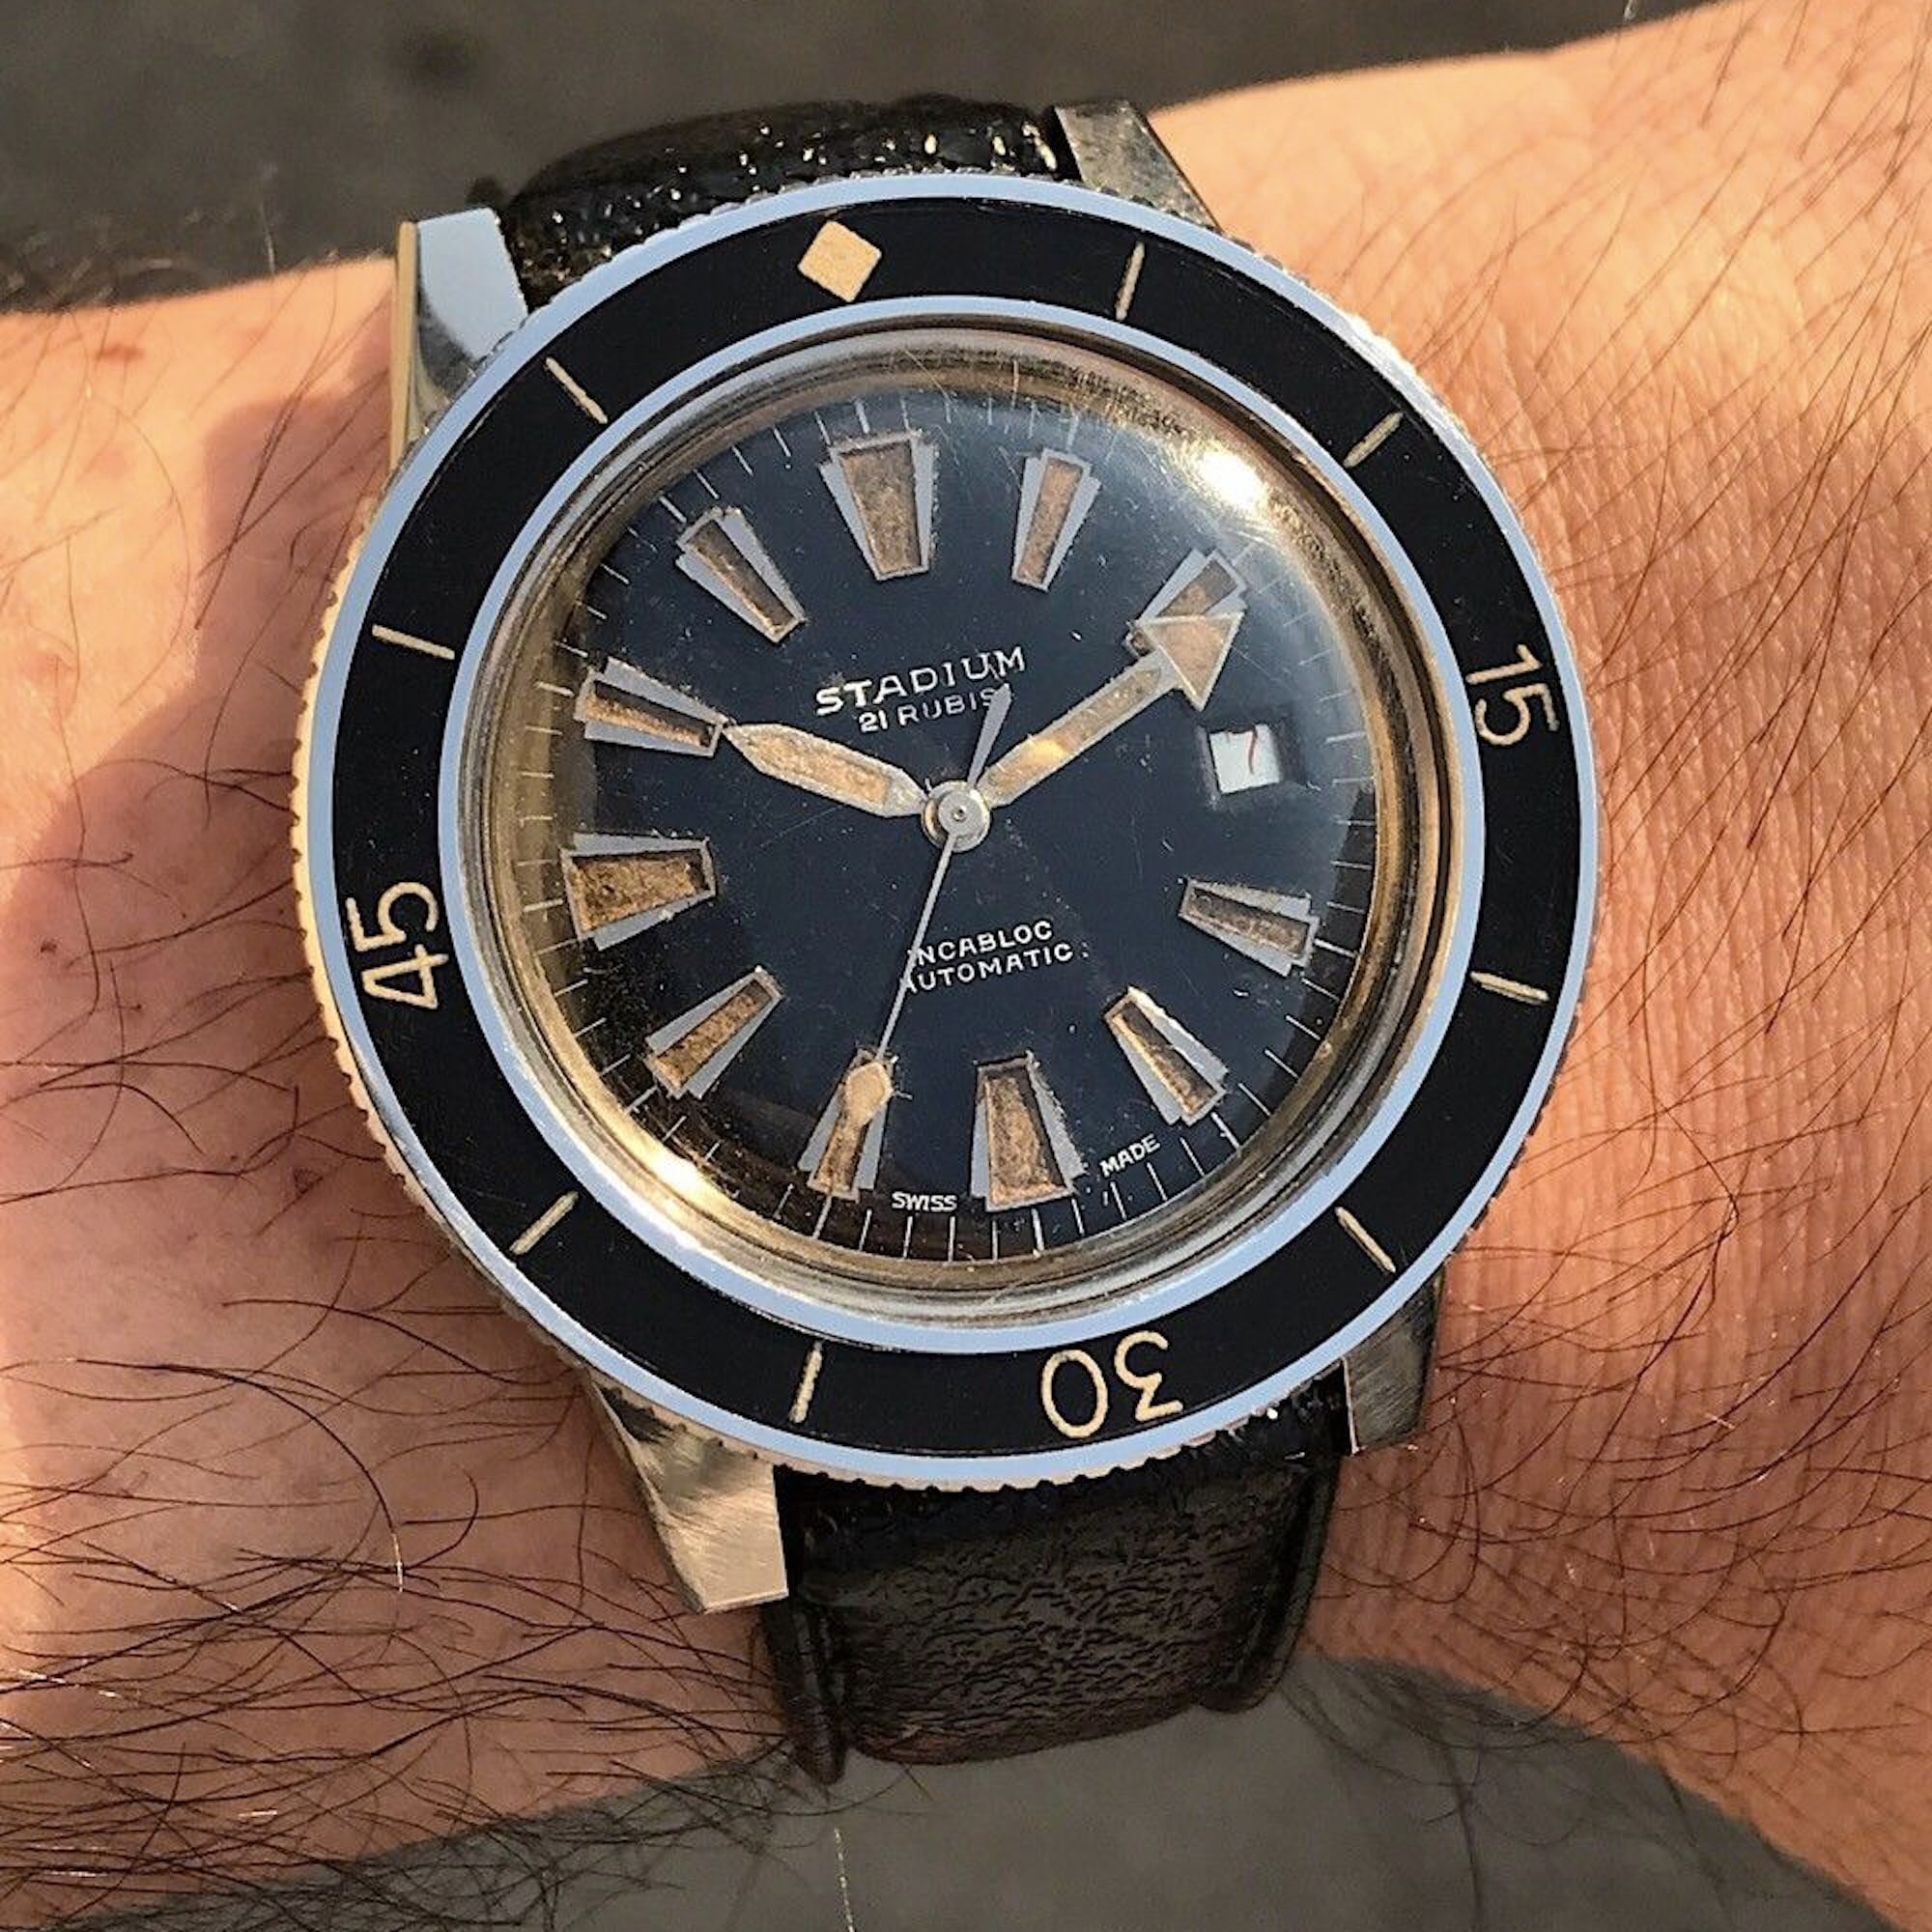 Bring a Loupe: A Unique Roger Smith, A Breitling 'Raquel Welch,' And An Unusual Angelus Repeater